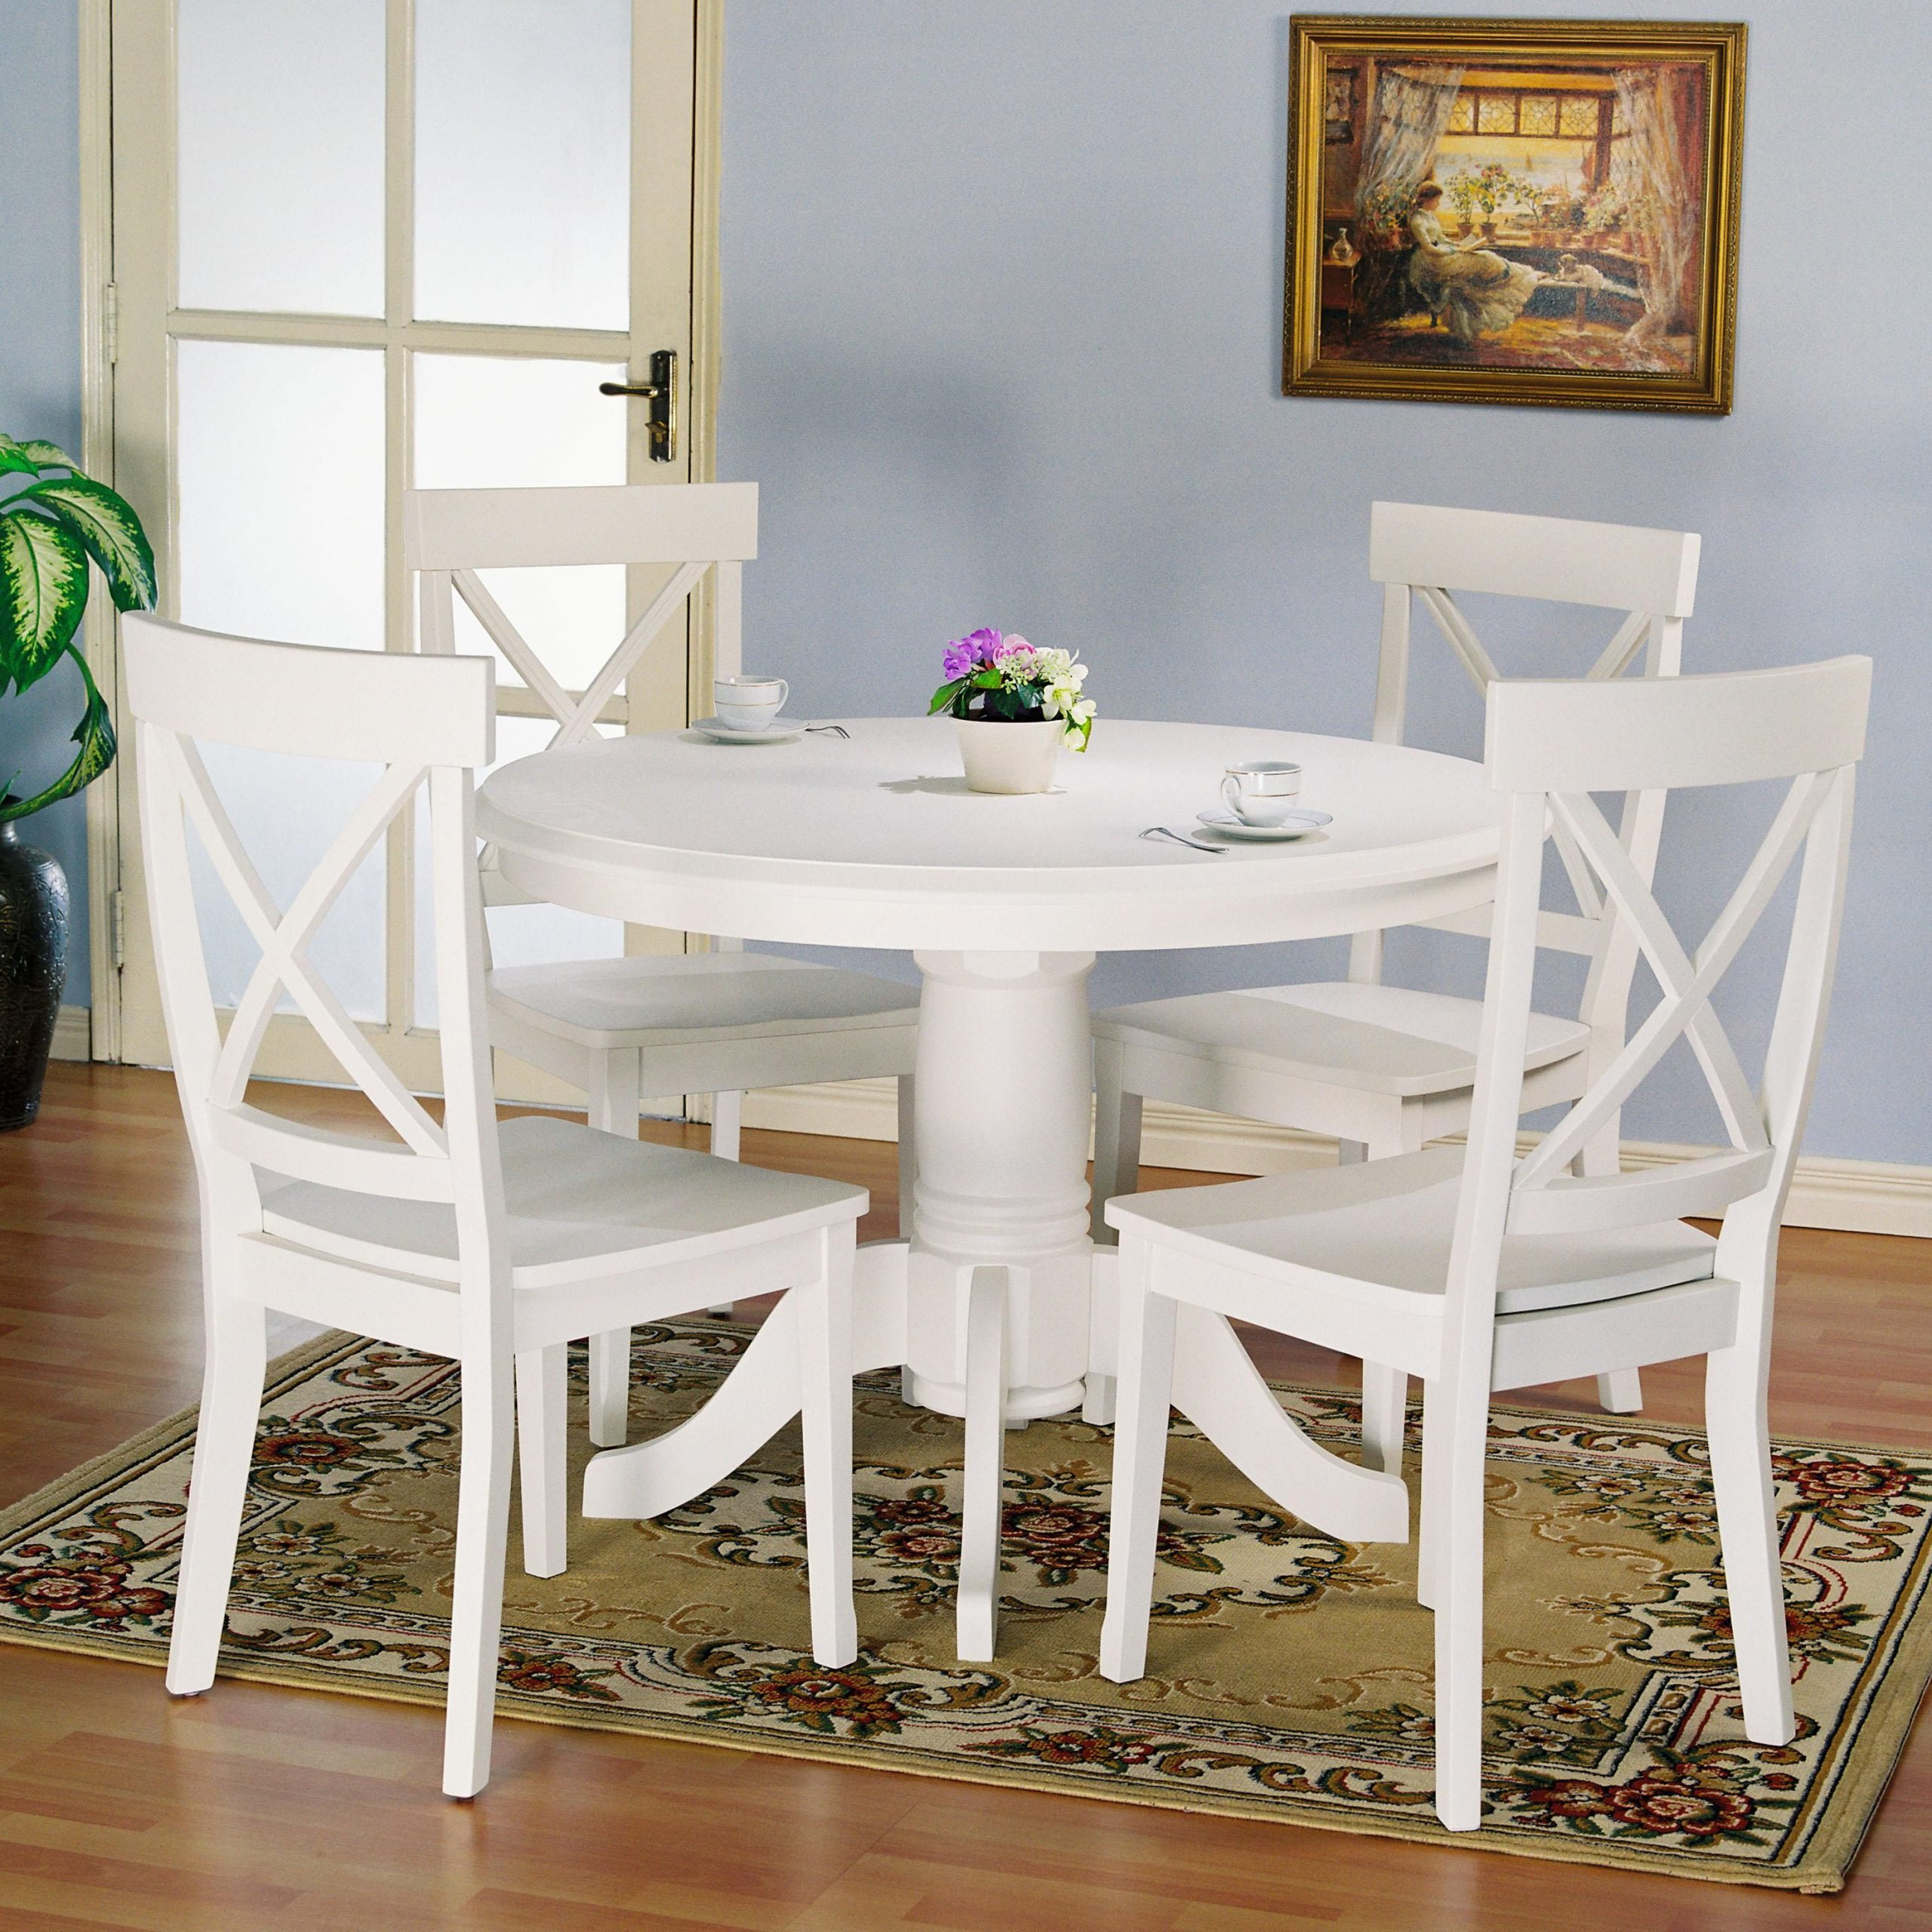 2017 Morris Round Dining Tables Inside 1280 Round Pedestal Wooden Tableholland House – Morris (View 4 of 30)